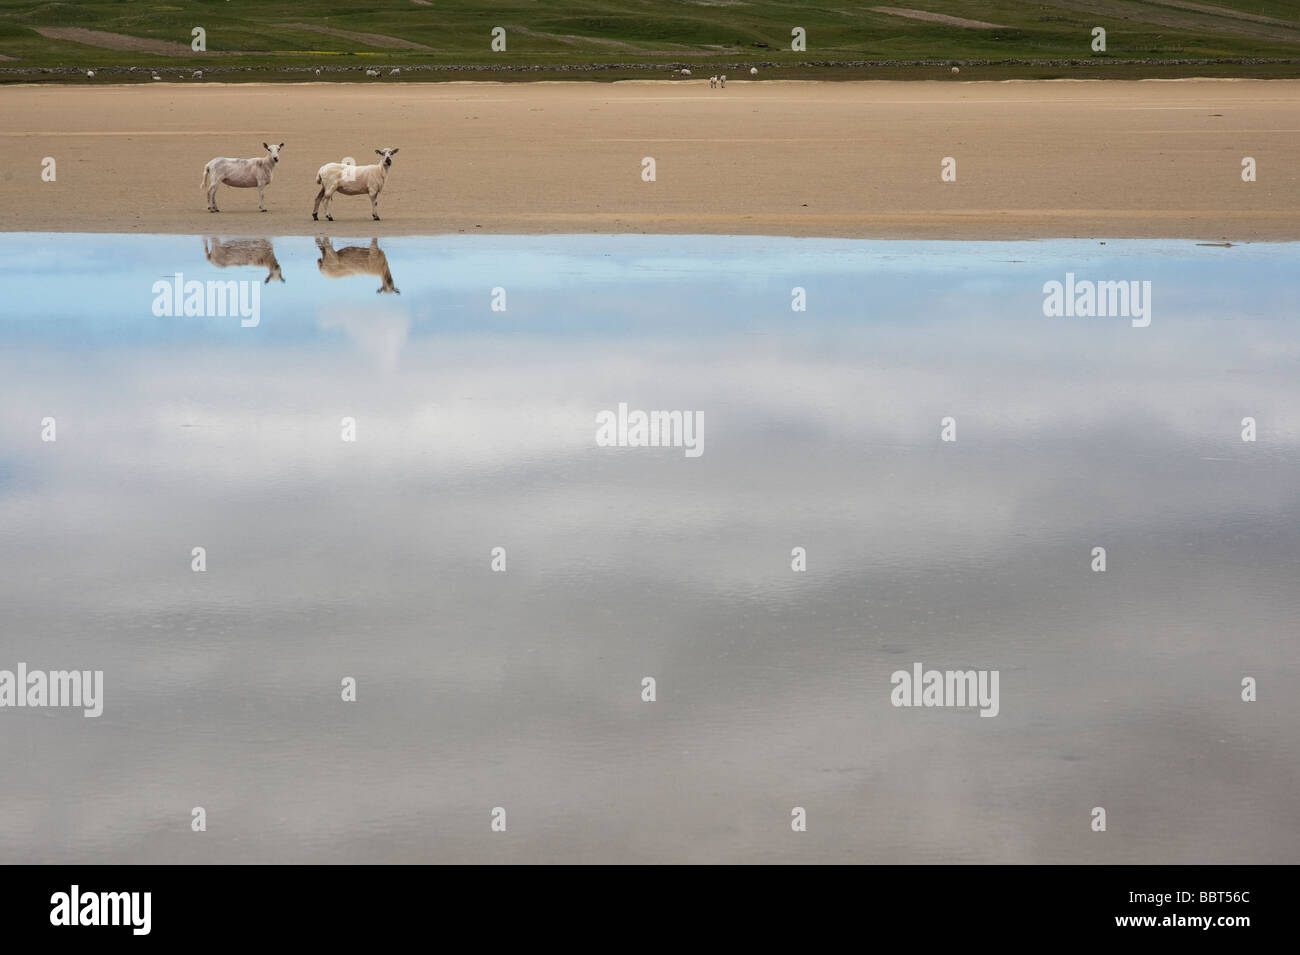 Sheep and their reflections in water on Traigh Scarista beach, Isle of Harris, Outer Hebrides, Scotalnd - Stock Image